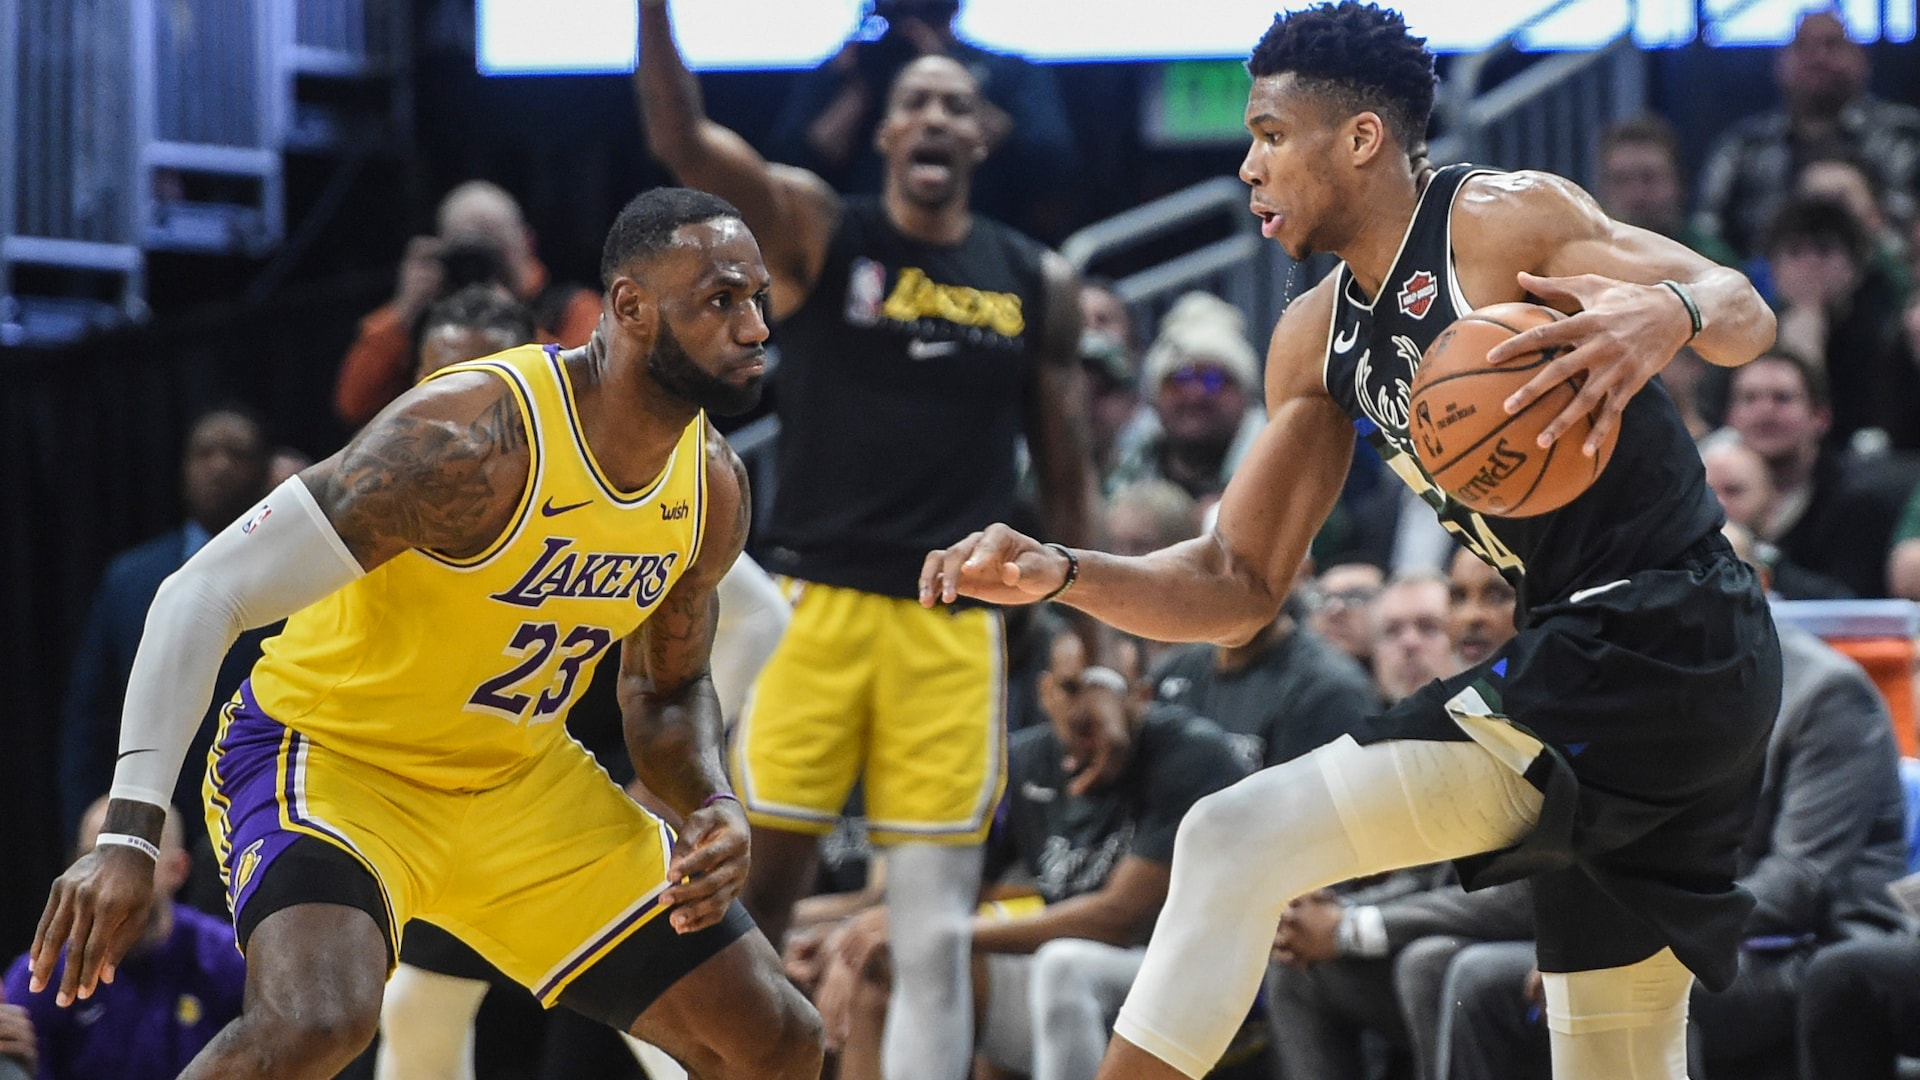 Kia MVP Ladder: Bucks vs. Lakers may sway voters ... but should it?